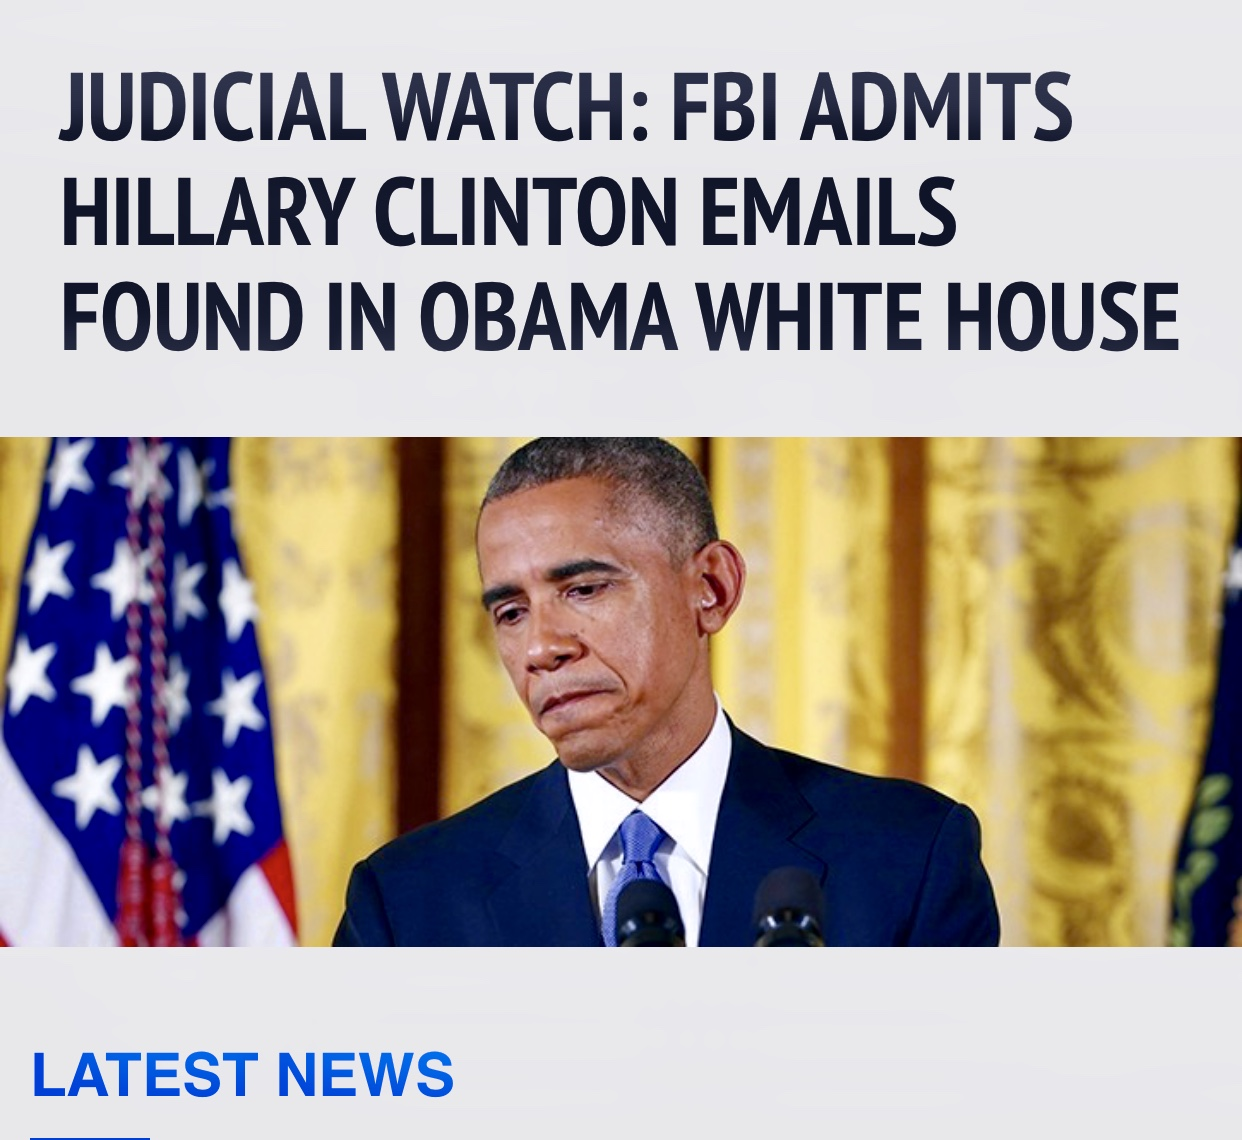 Judicial Watch: FBI Admits Hillary Clinton Emails Found in Obama White House